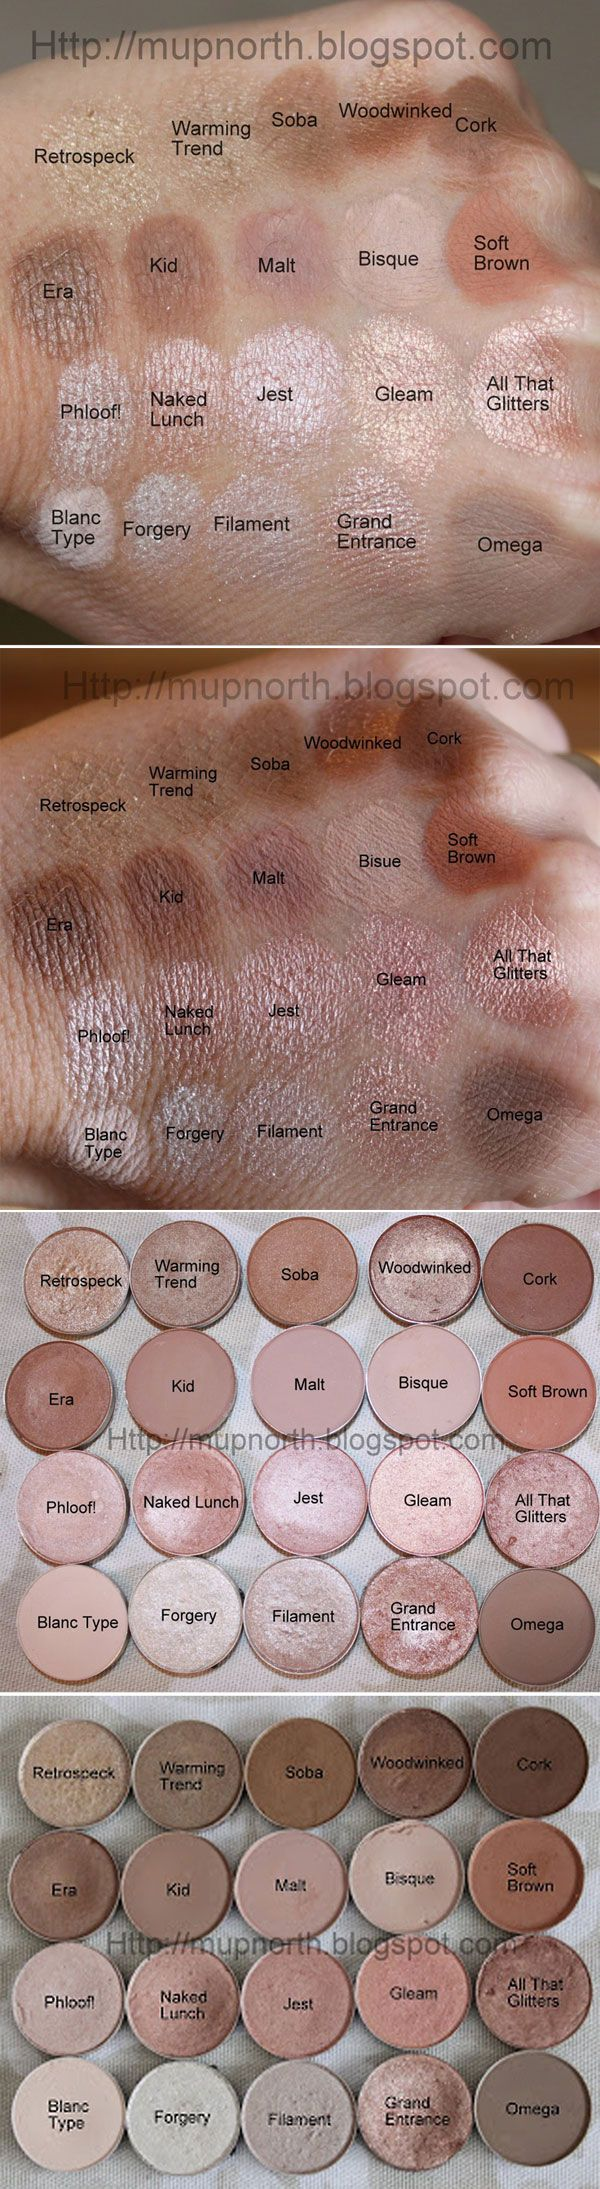 SWATCHES :: MAC Light Neutrals by #mupnorth :: Primed/ intensely pigmented (i.e. Soft Brown = lighter blended on) **FAVS: Row1: Retrospeck, Warming Trend, Soba, Cork  R2: Era, Kid, Malt  R3: Phloof!, Naked Lunch, Jest  R4: Blanc Type, Grand Entrance (HG!), Omega  **MUST HAVE: Cork, Kid/Malt, Soft Brown, Phloof!, Naked Lunch, All That Glitters, Blanc Type, Omega  **STAY AWAY: Retrospeck, Gleam, Forgery, Filament (lustre finish=very gritty/not pigmented/major fall out. Some = good i.e…